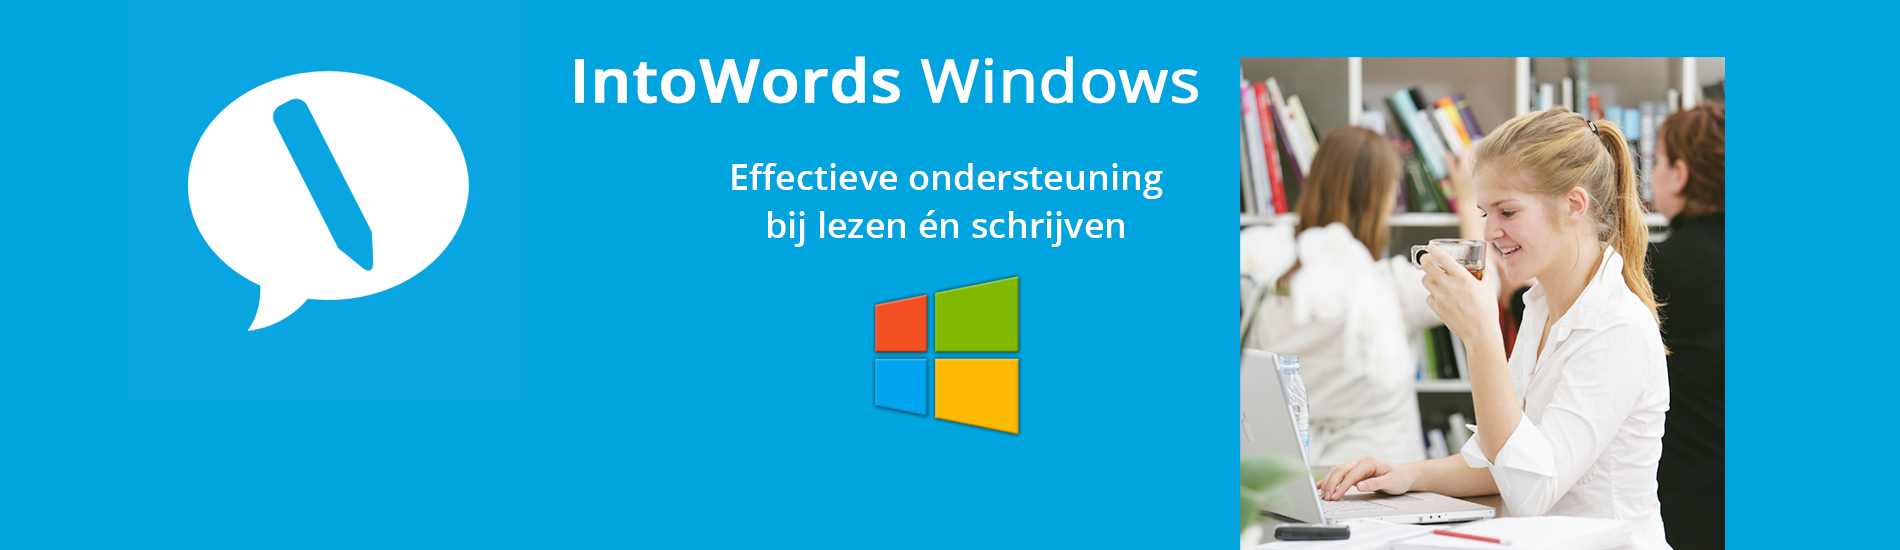 slider intowords windows